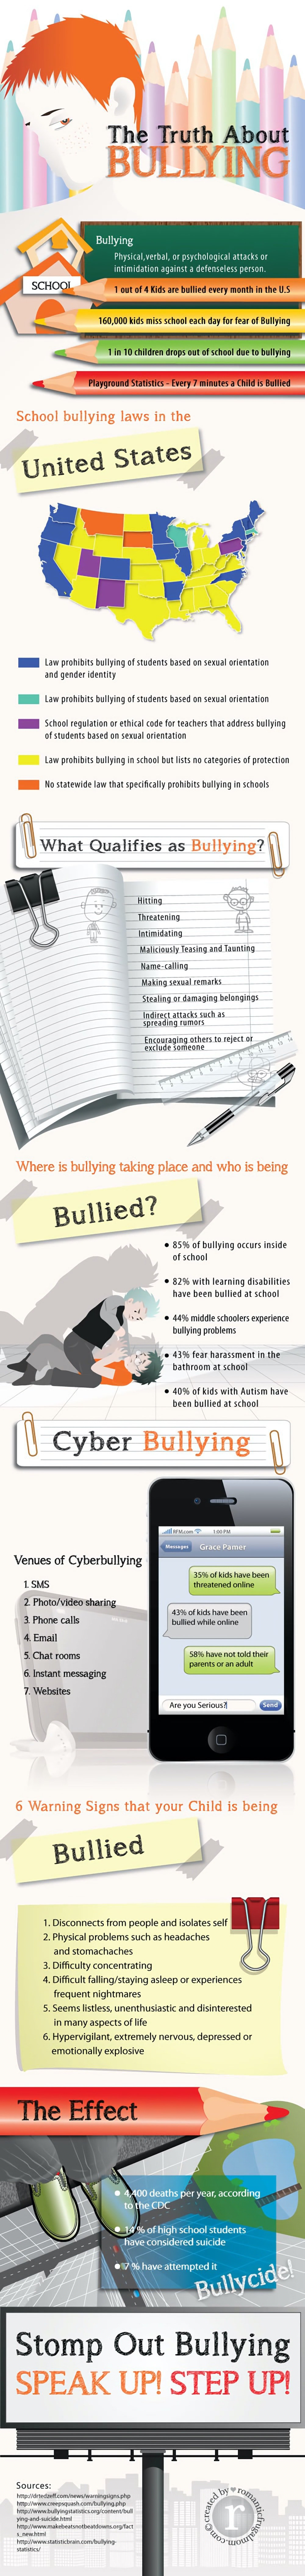 The Truth About Bullying